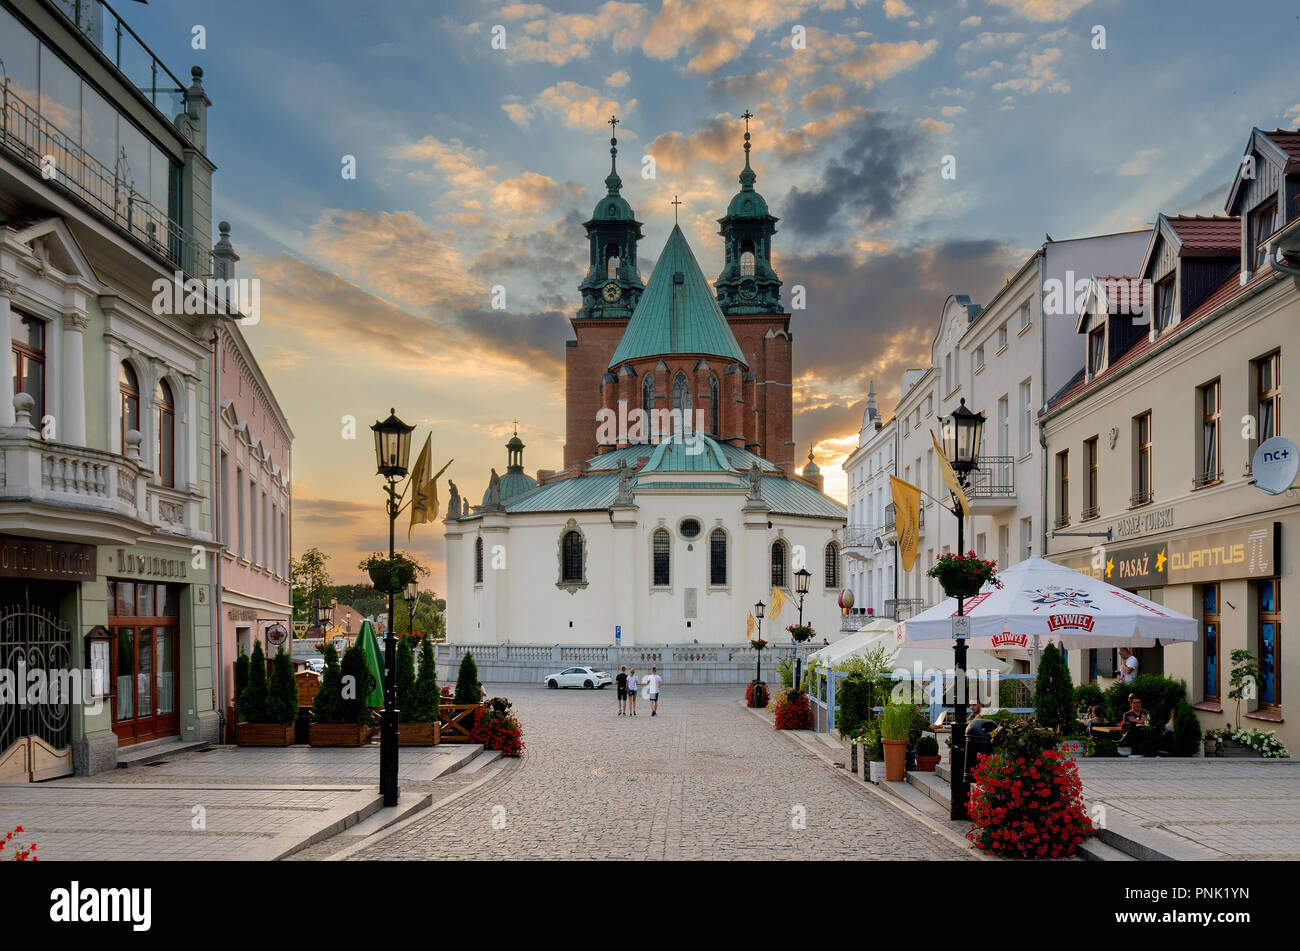 Gniezno, Greater Poland province, Poland. The Royal Gniezno Cathedral. - Stock Image